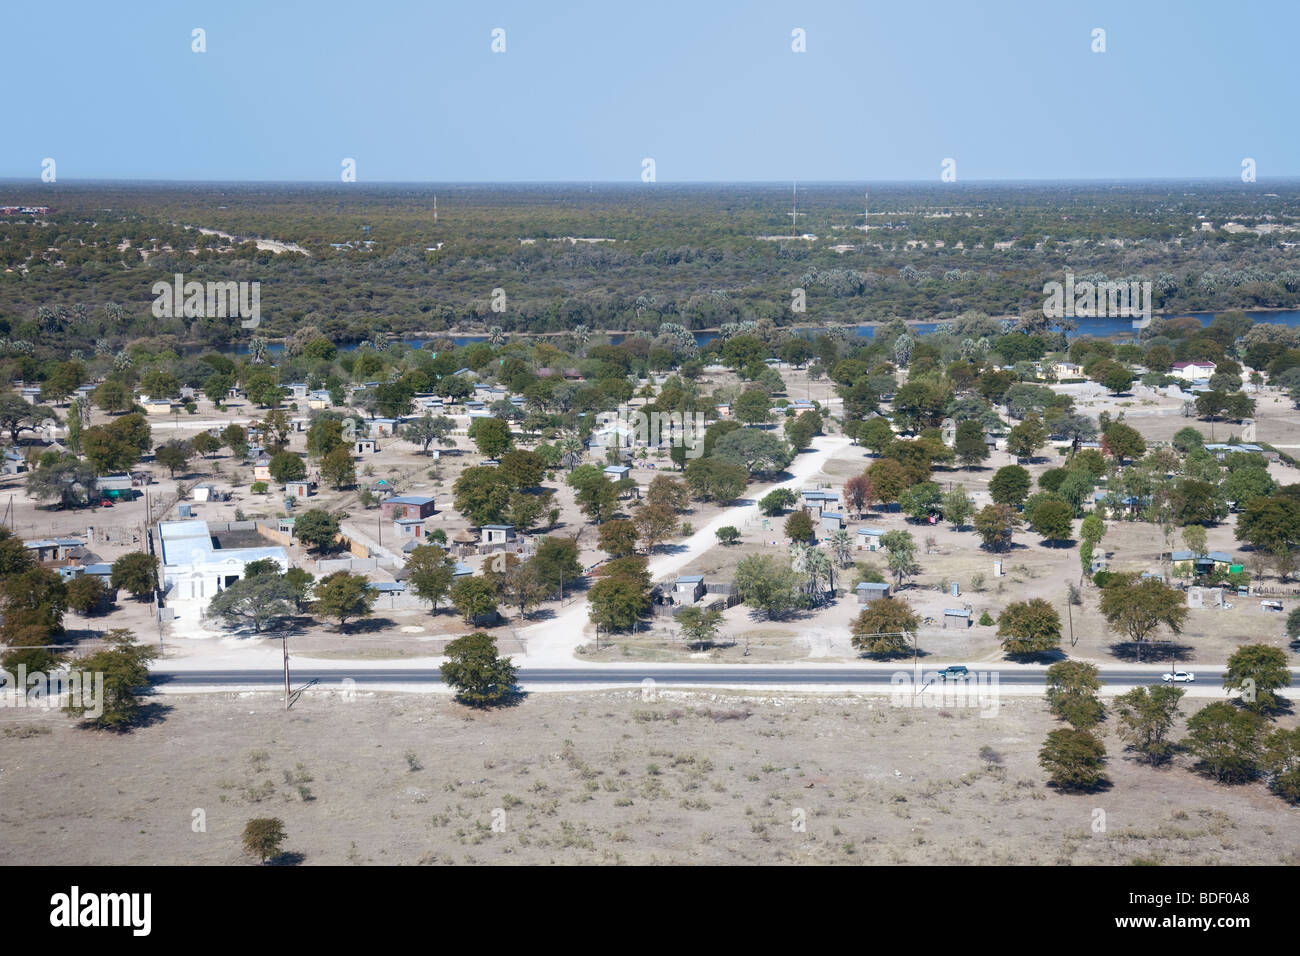 The town of Maun and Thalamakane River in northern Botswana, taken from a small Cessna plane which has just taken - Stock Image